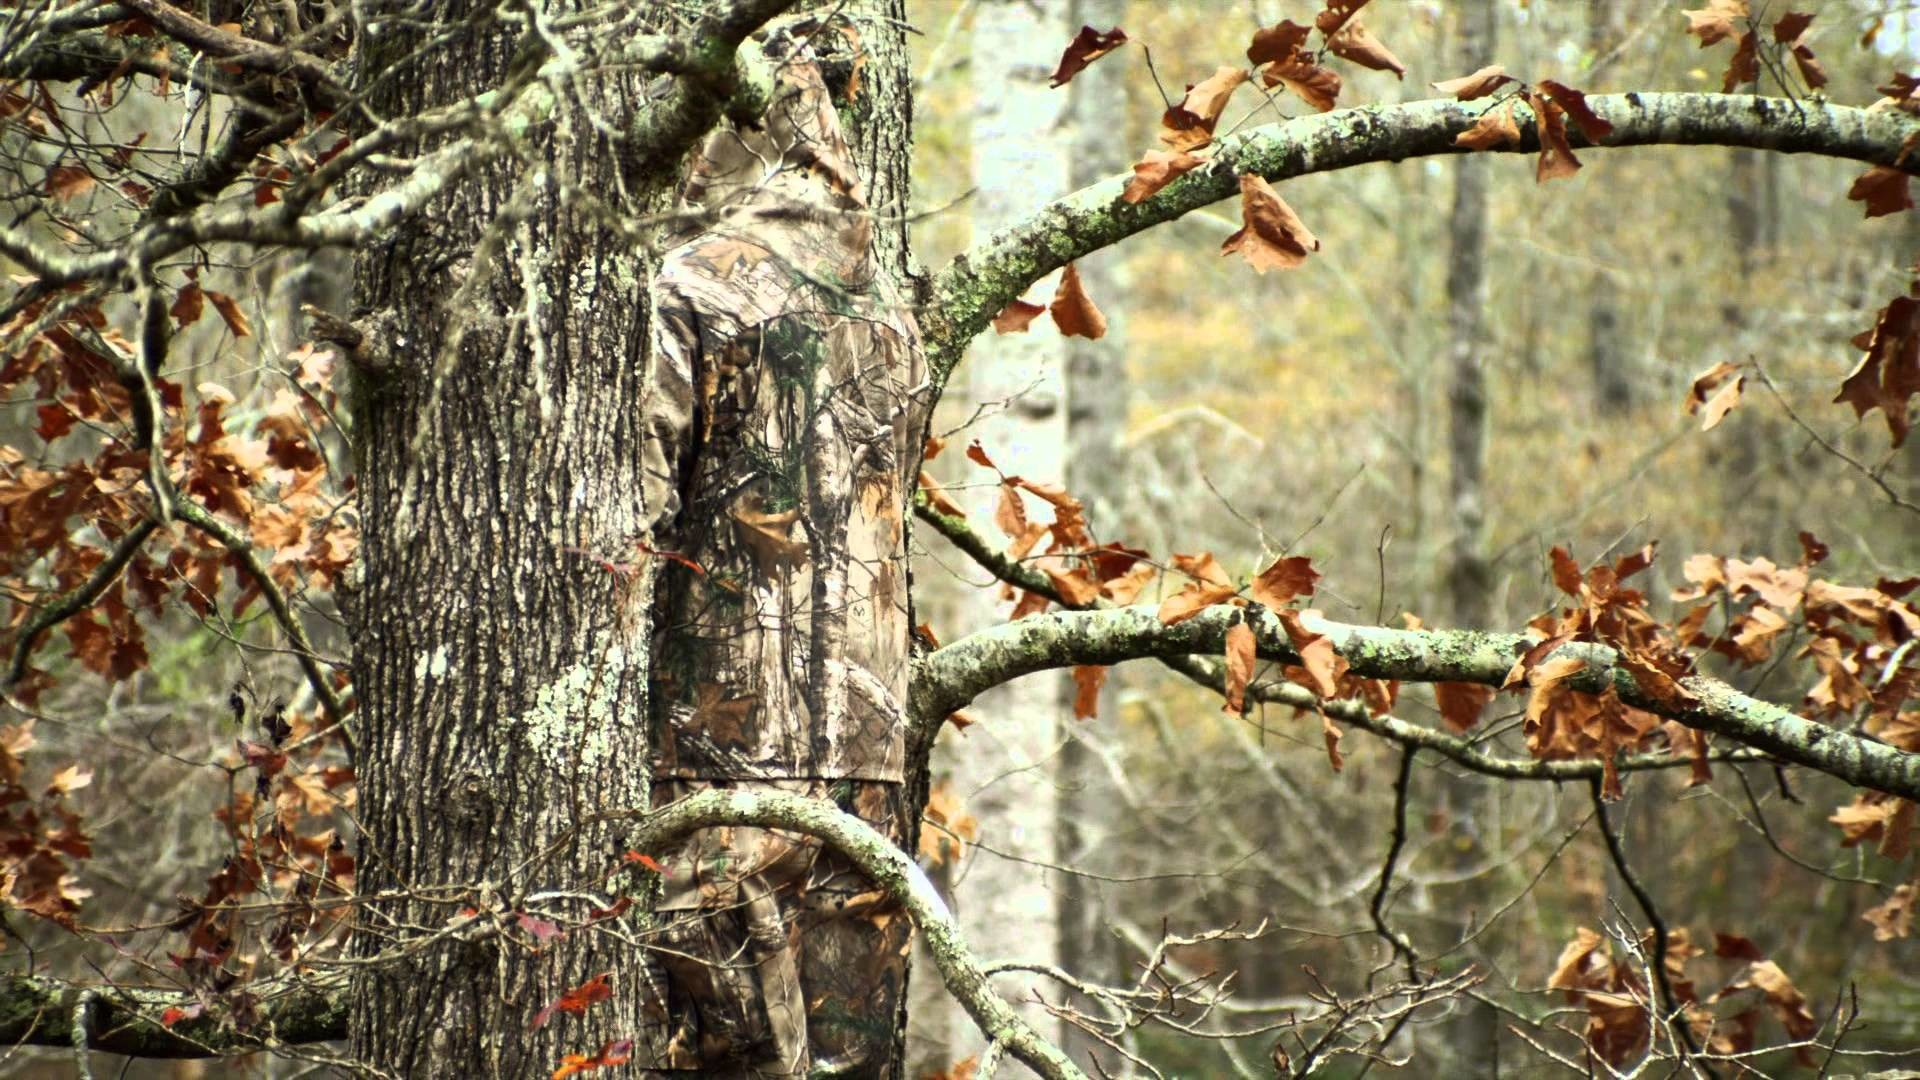 1920x1080 Camo wallpaper Realtree